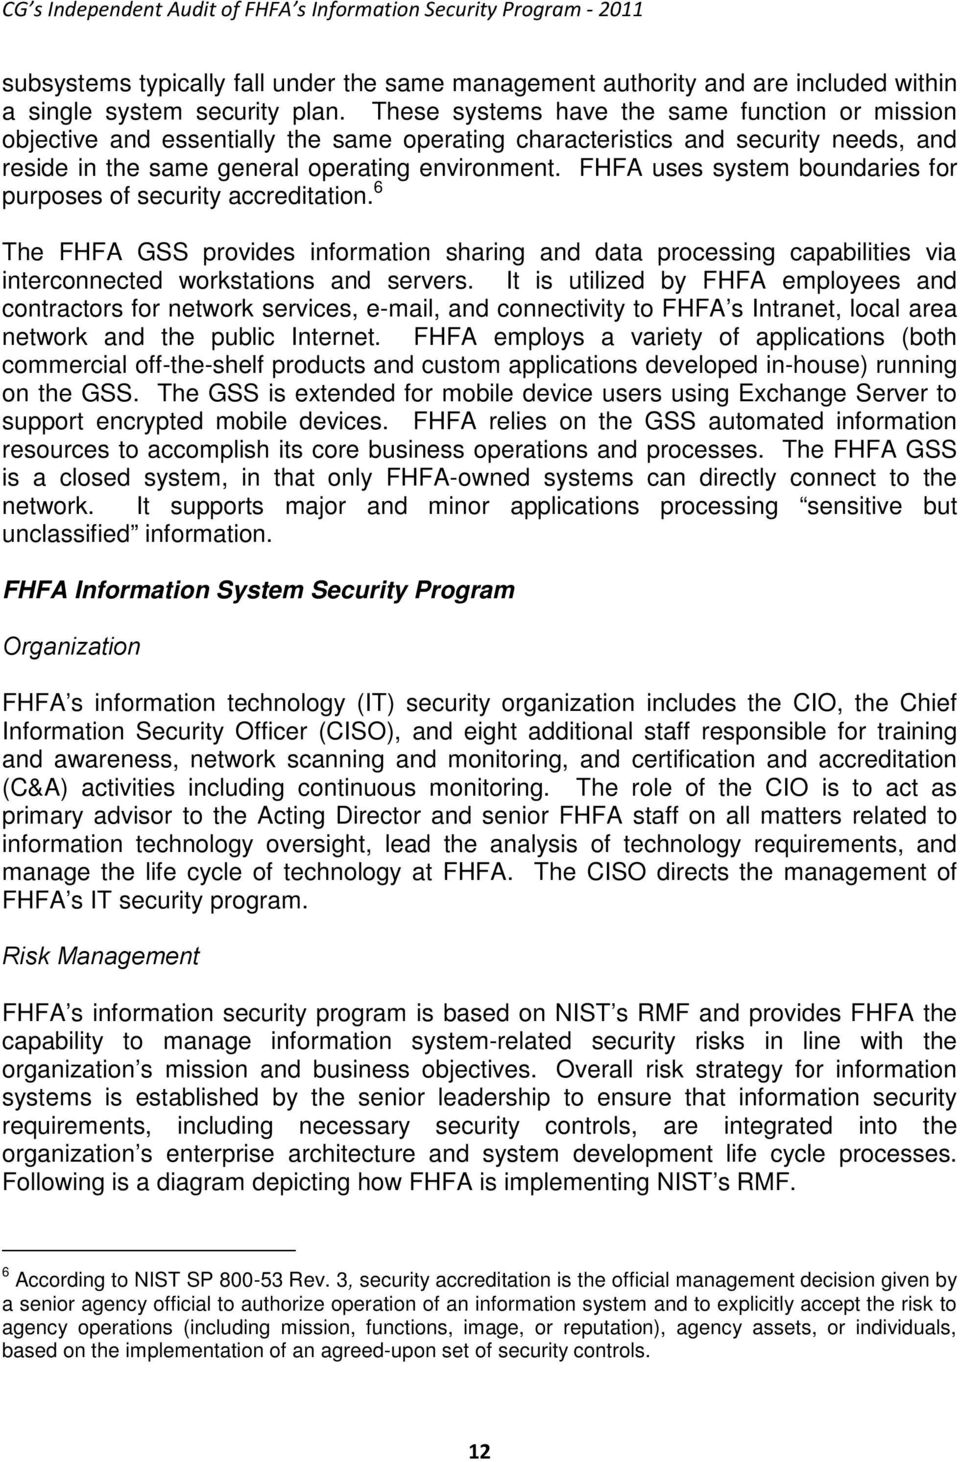 FHFA uses system boundaries for purposes of security accreditation. 6 The FHFA GSS provides information sharing and data processing capabilities via interconnected workstations and servers.